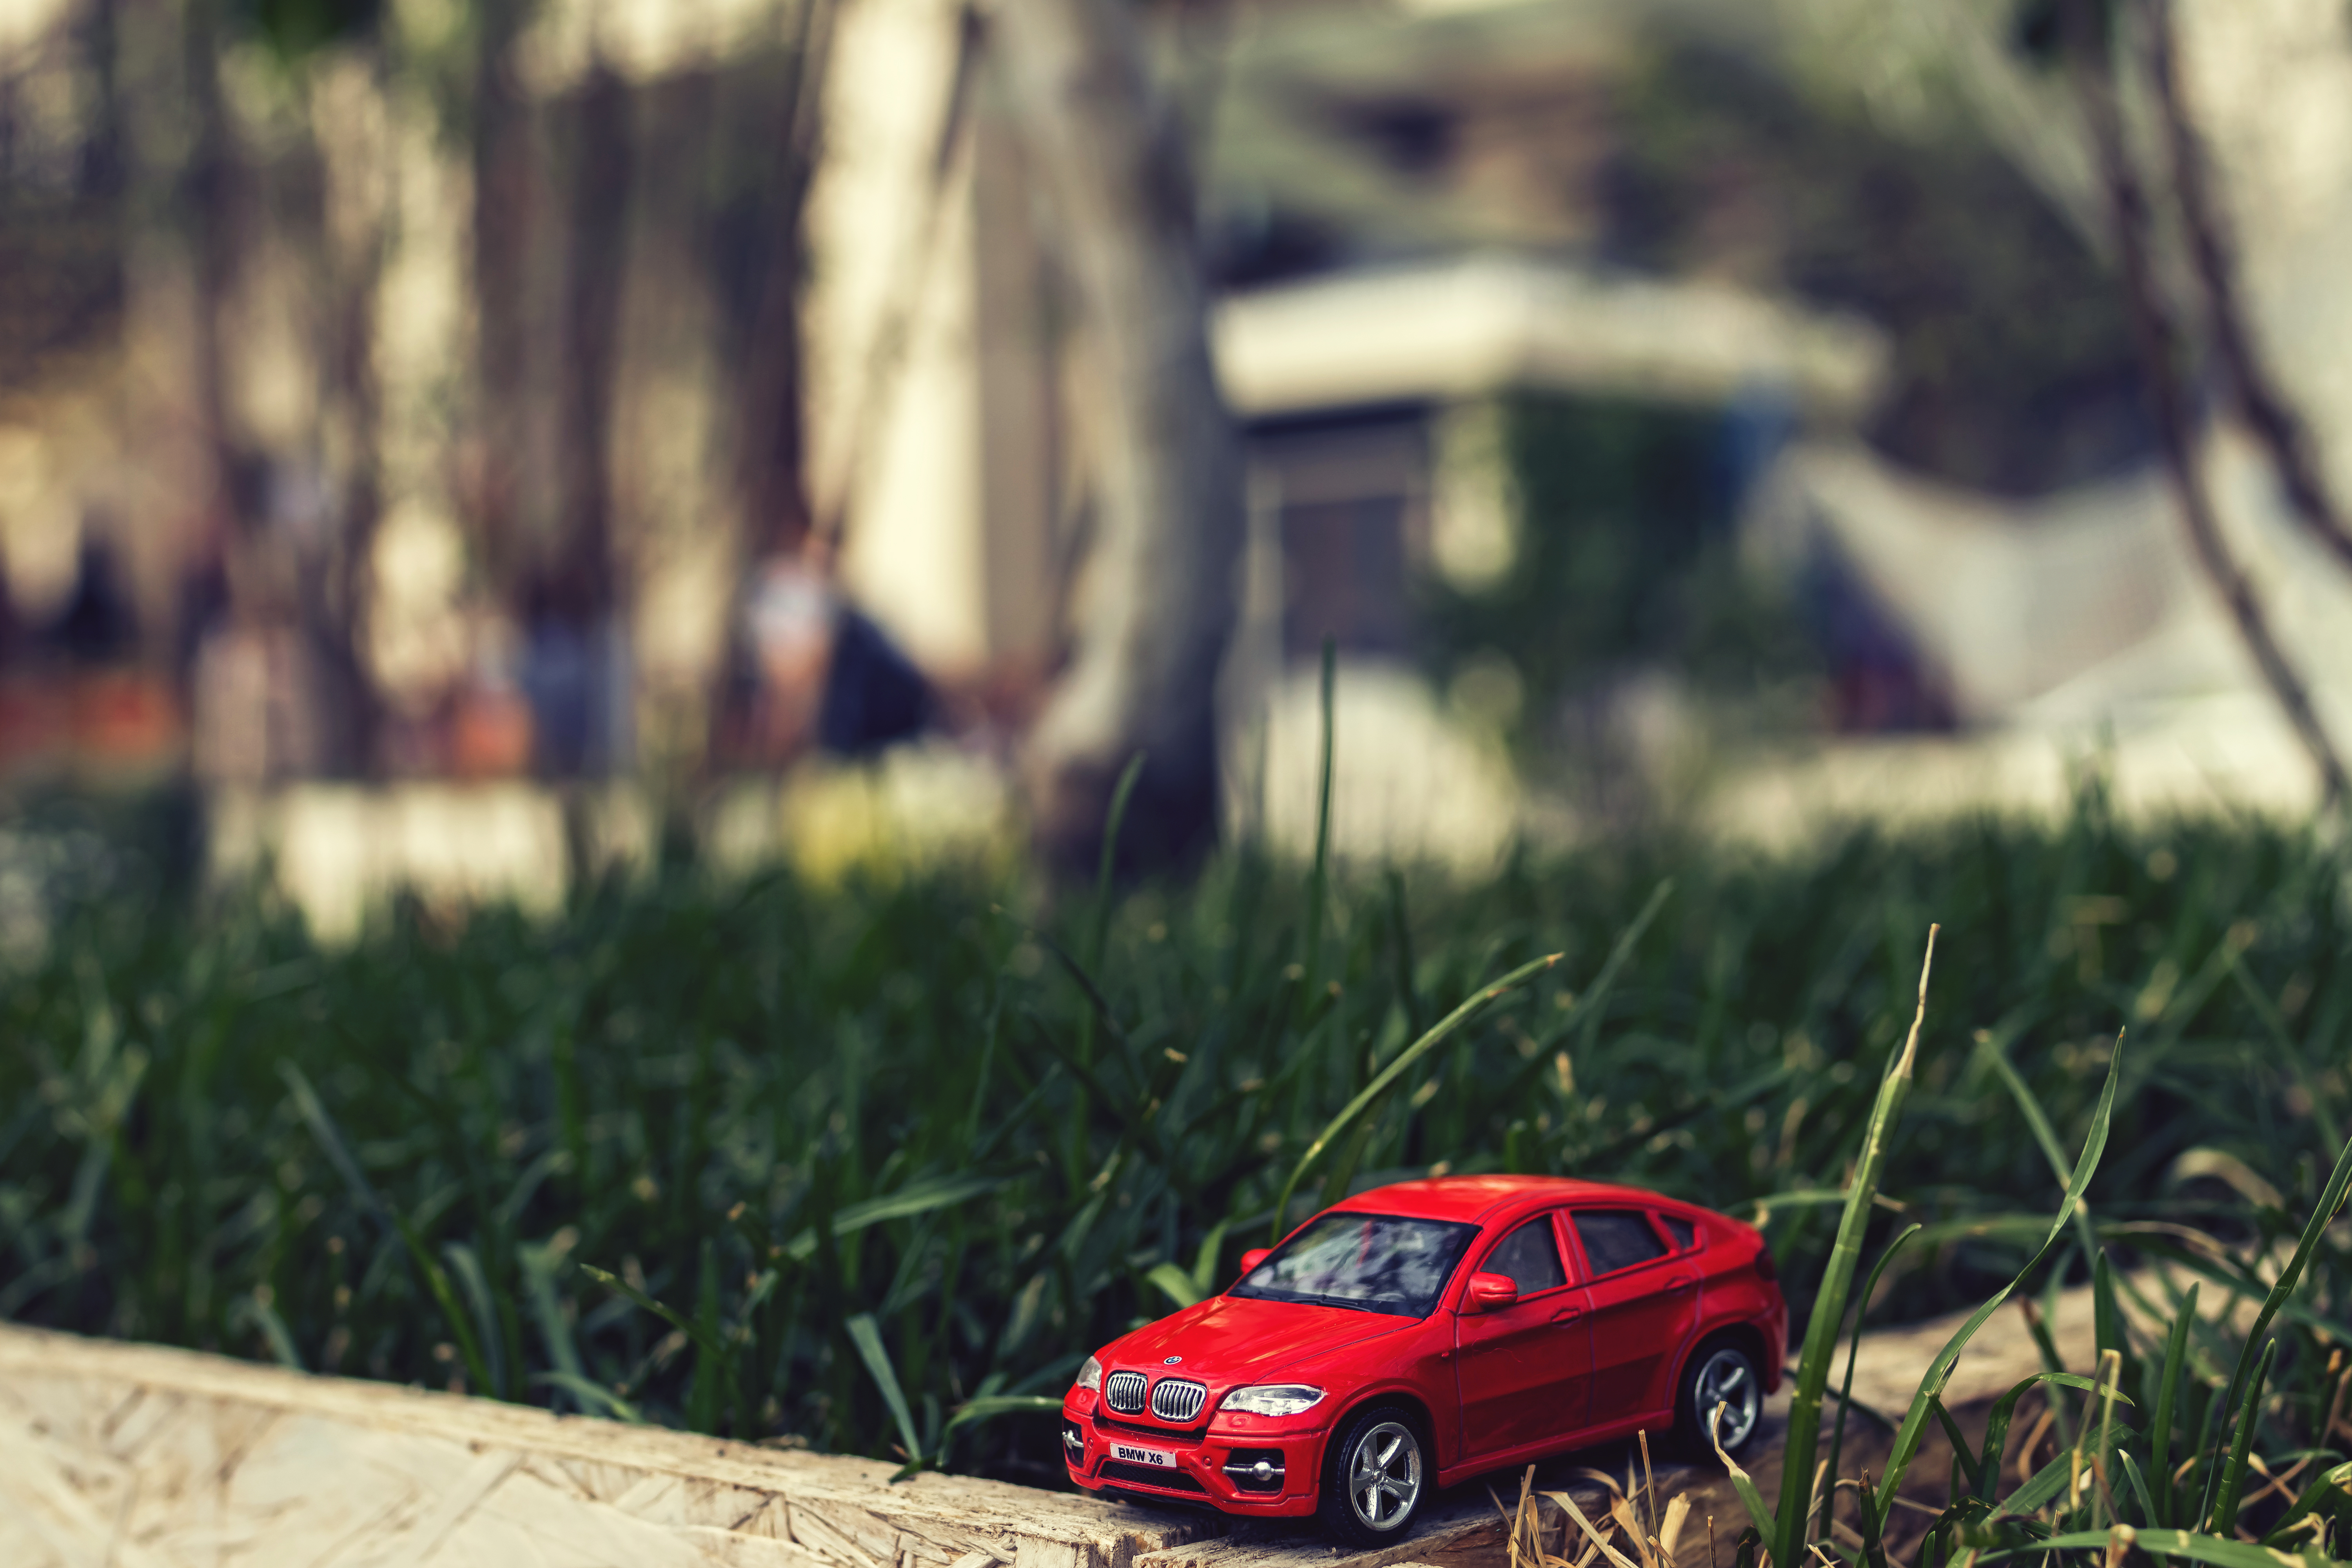 Red Bmw Car Scale Model by Grass